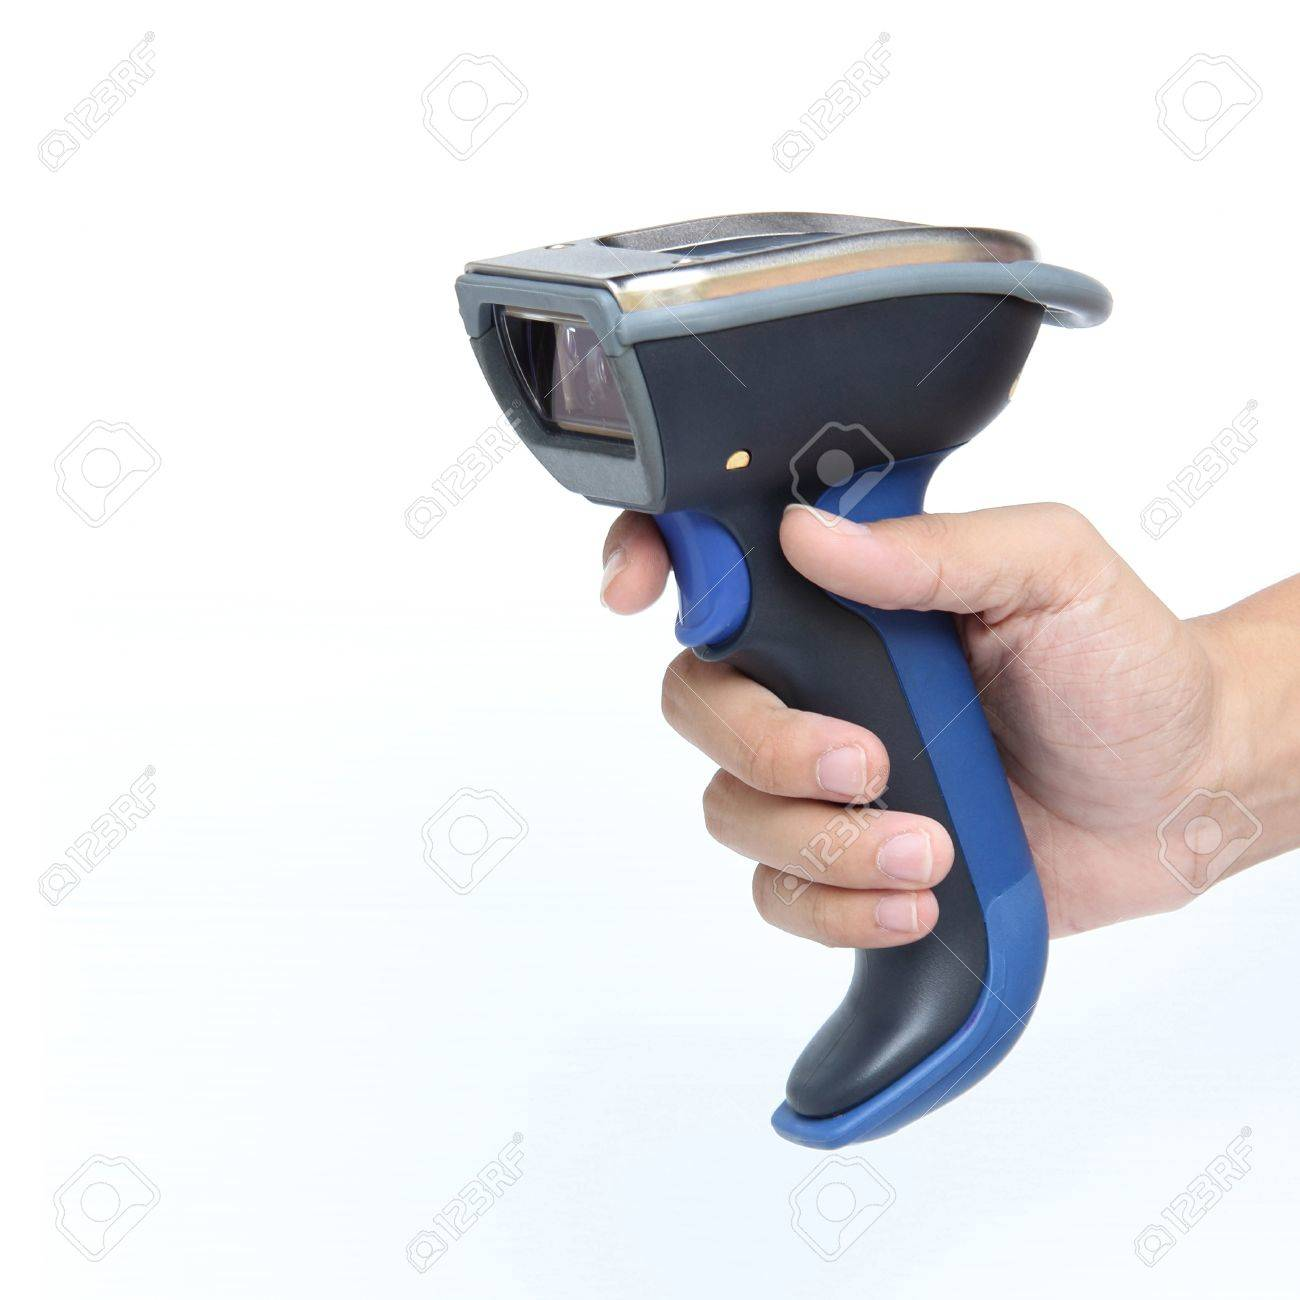 Bluetooth barcode scanner isolated over white background Stock Photo - 15703398